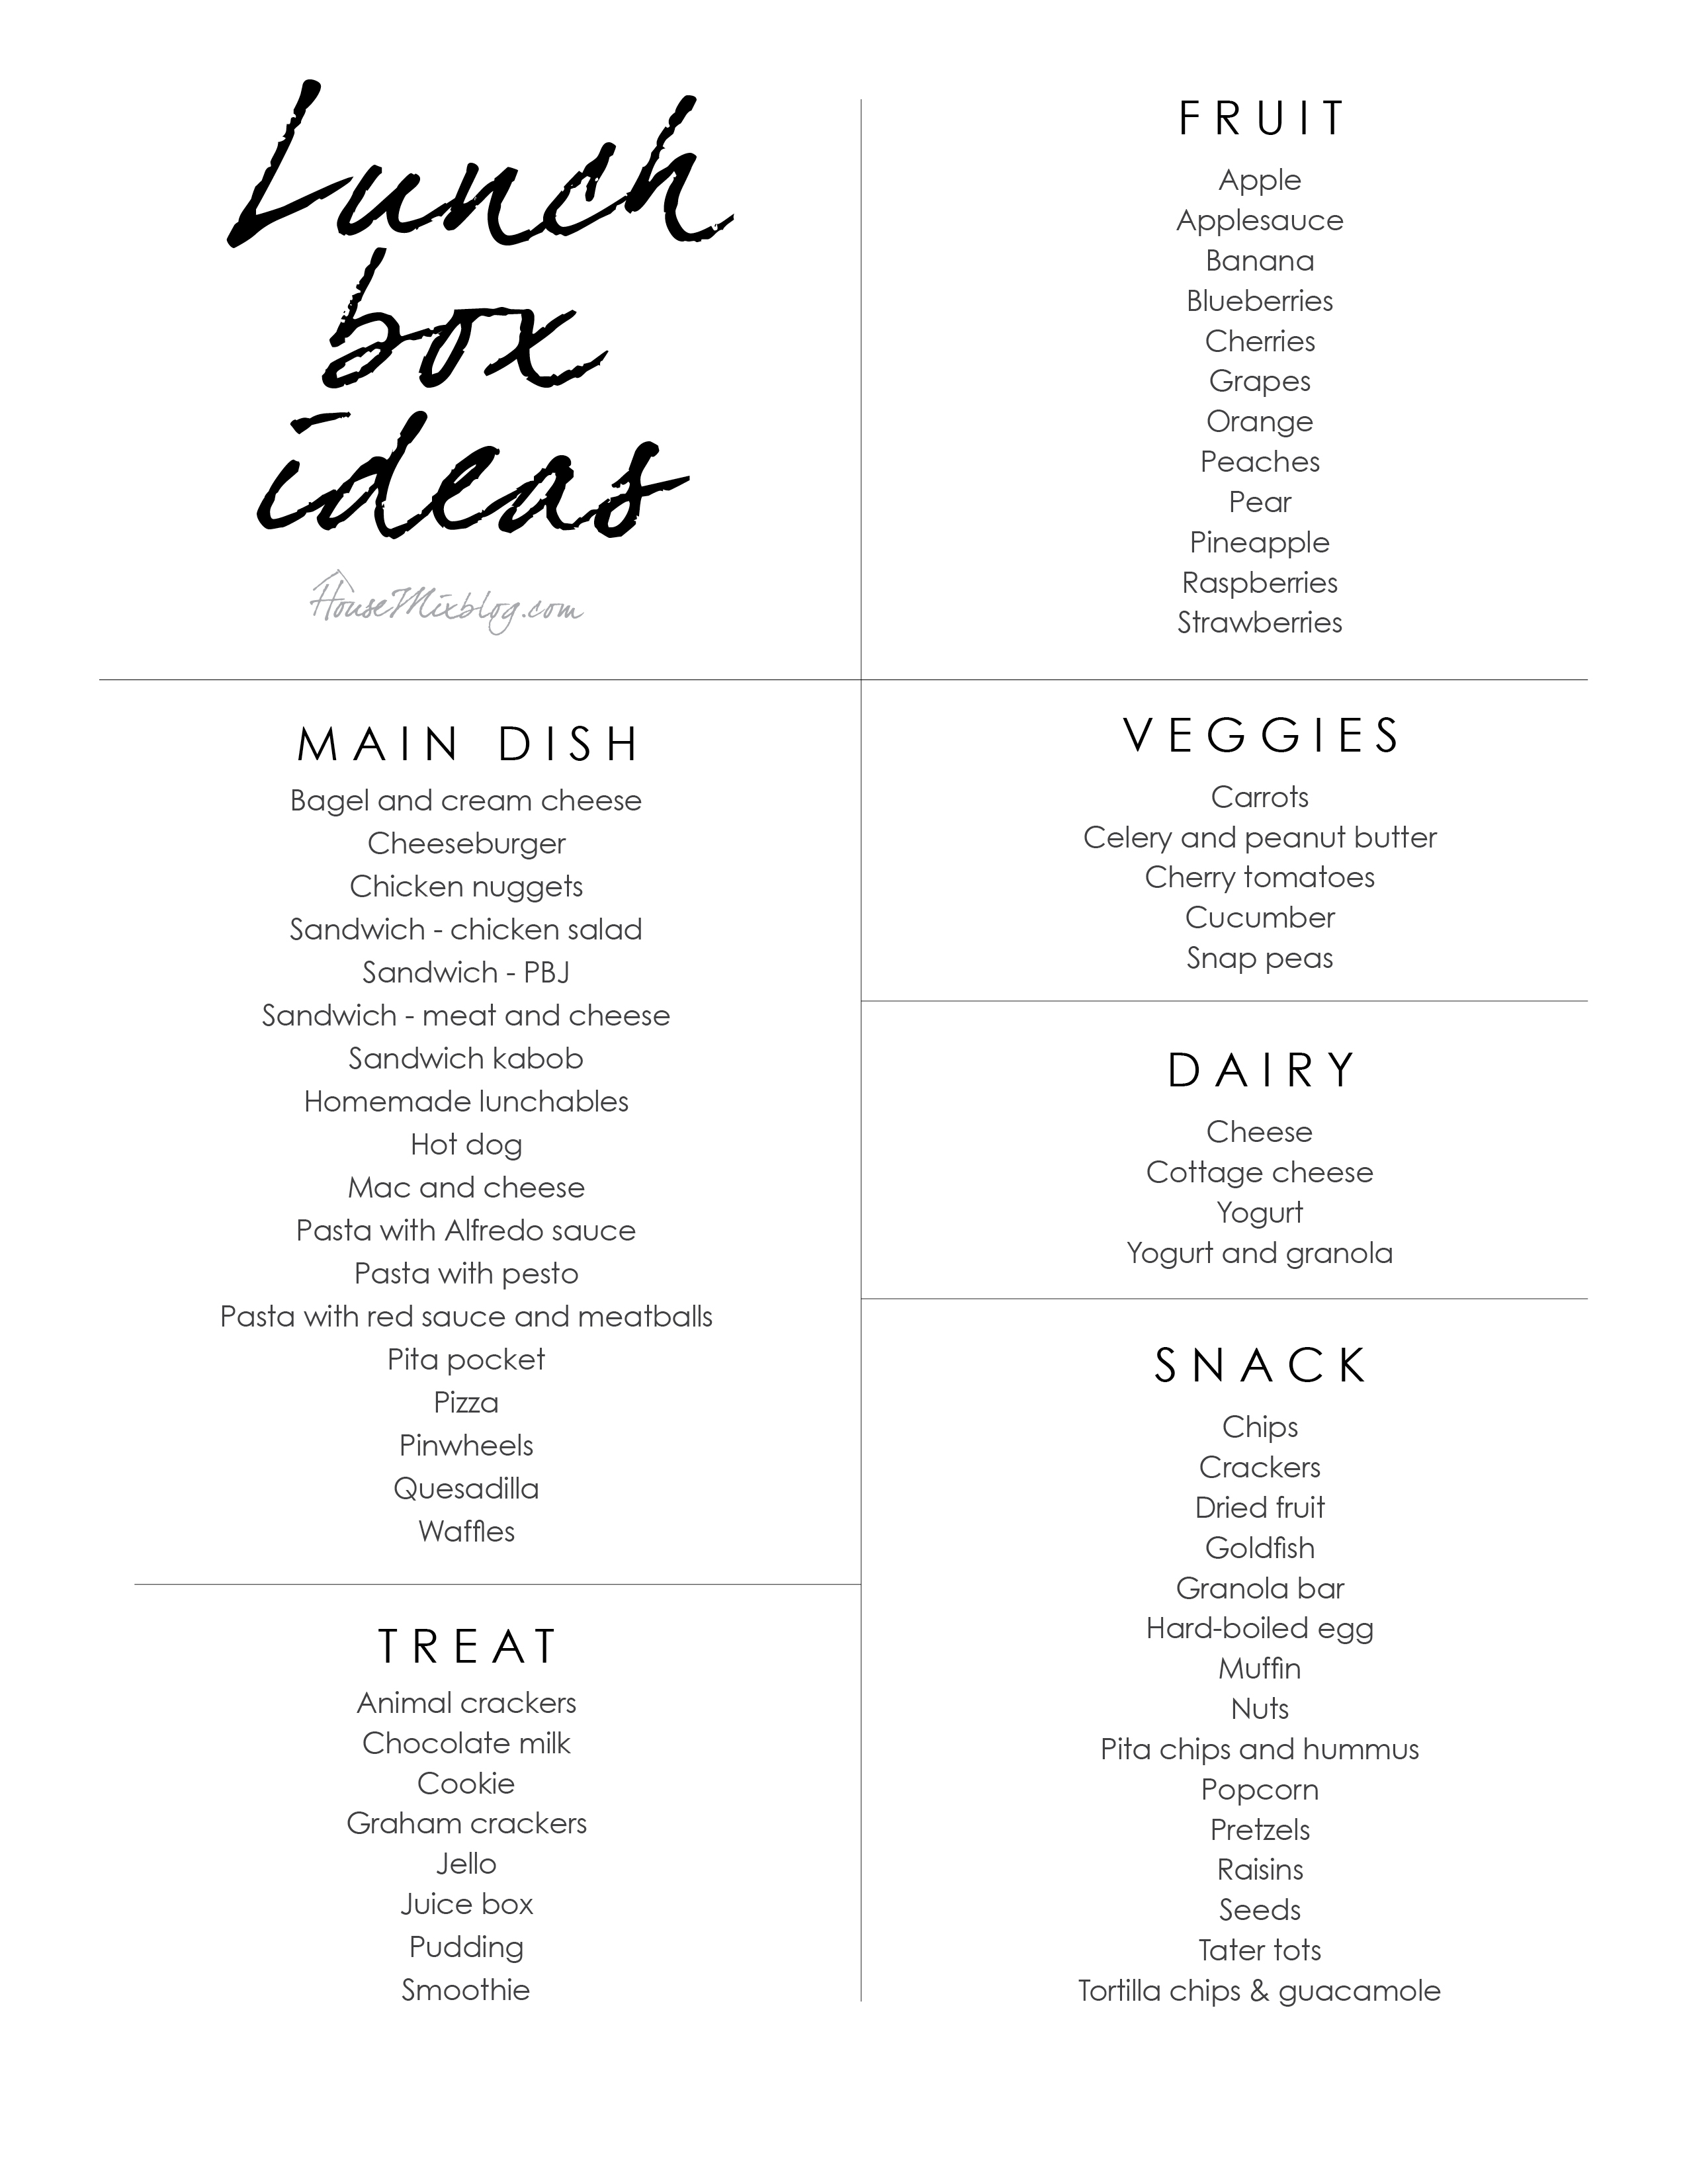 Printable lunchbox idea list - easy kid school lunches to pack